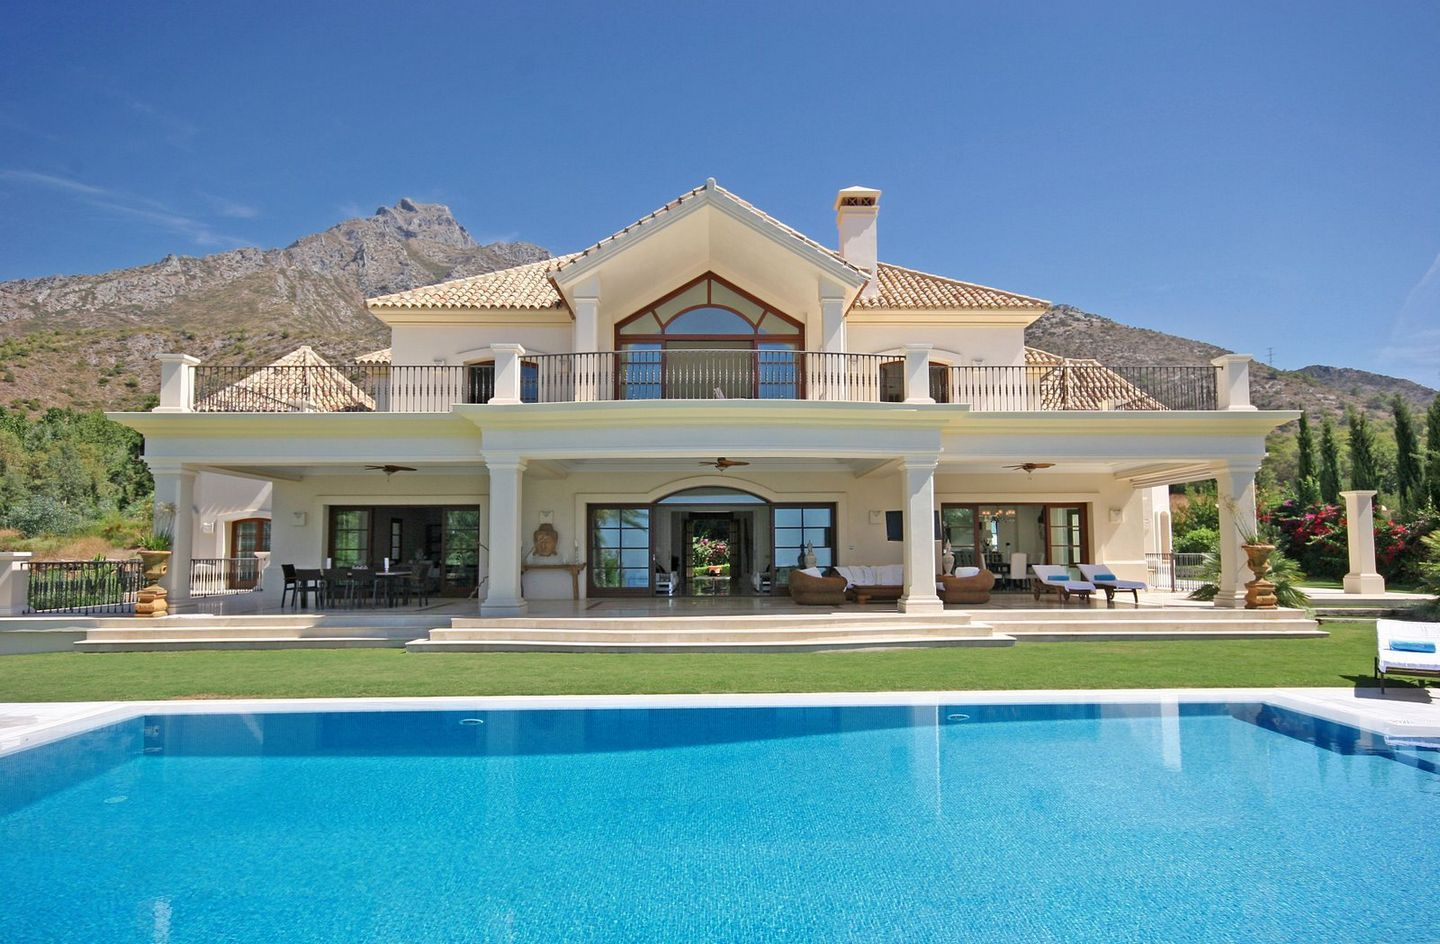 Marbella Mansion. I wouldn't be upset with a house like